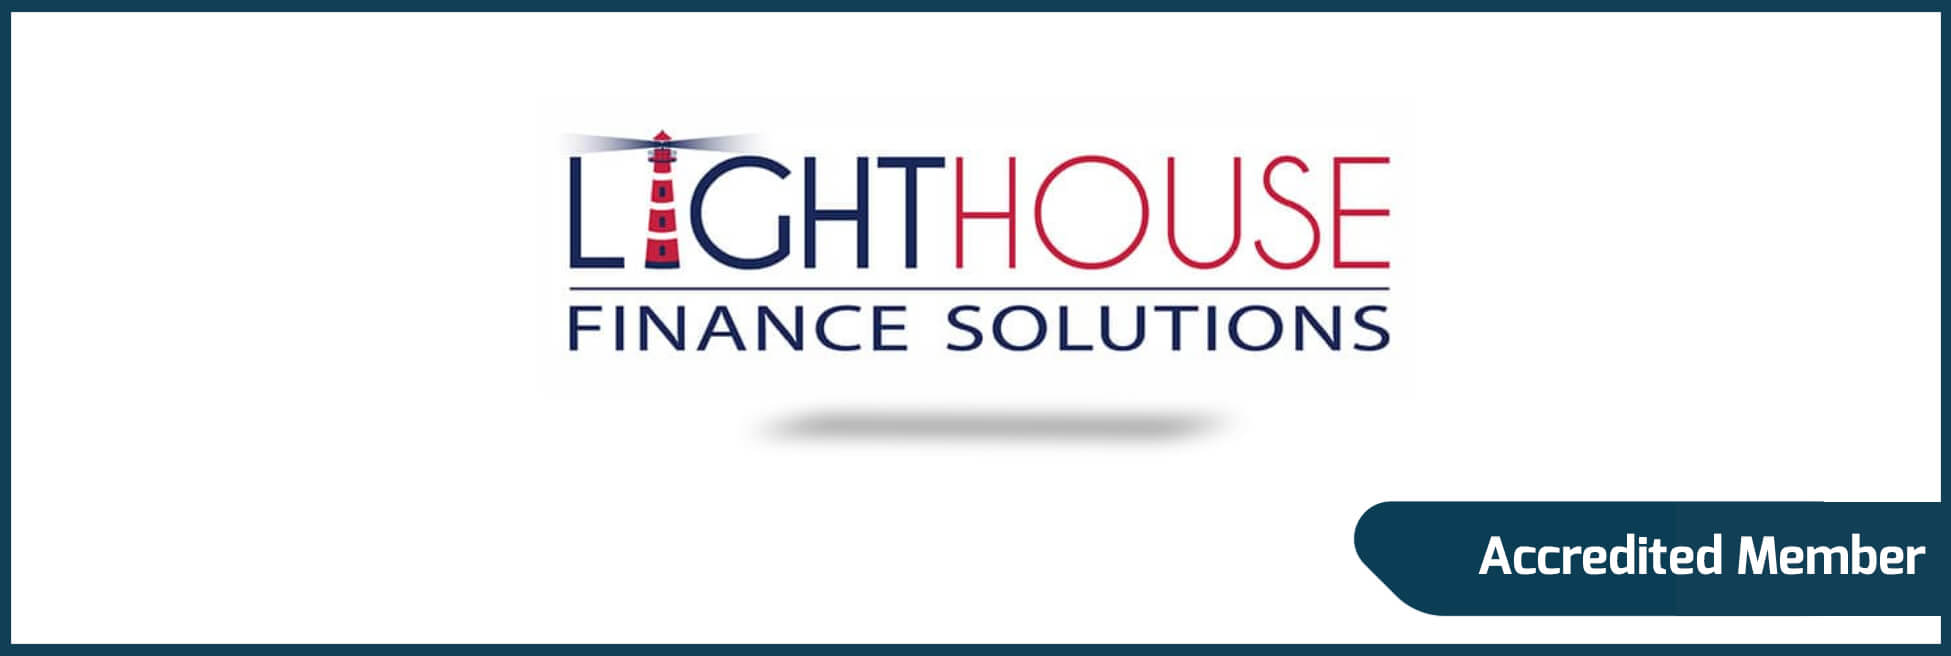 Lighthouse Finance Solutions